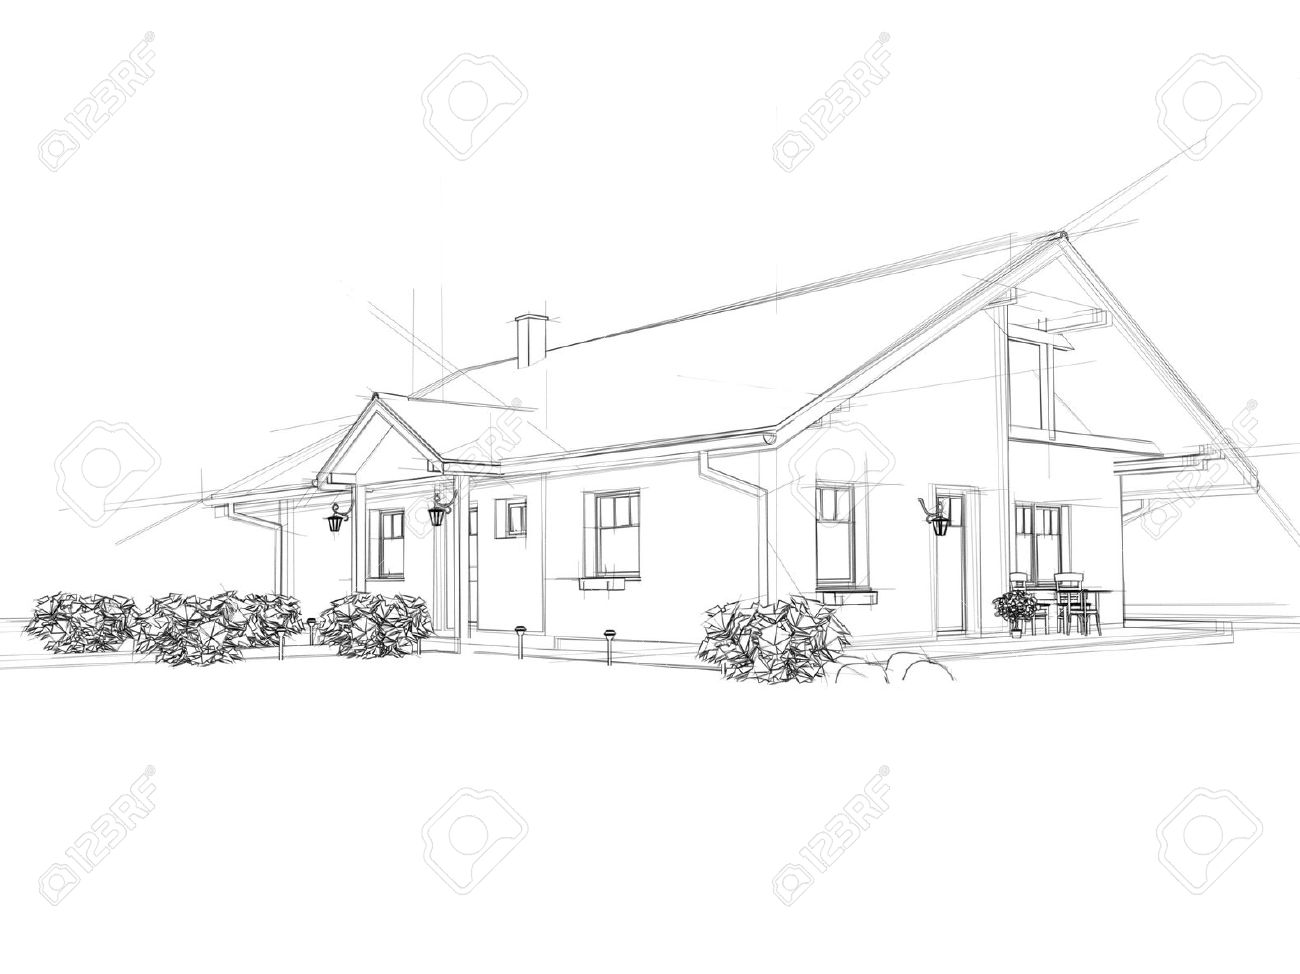 15 426 architectural drawing stock illustrations cliparts and architectural drawing illustation of a house black ink drawing stock photo